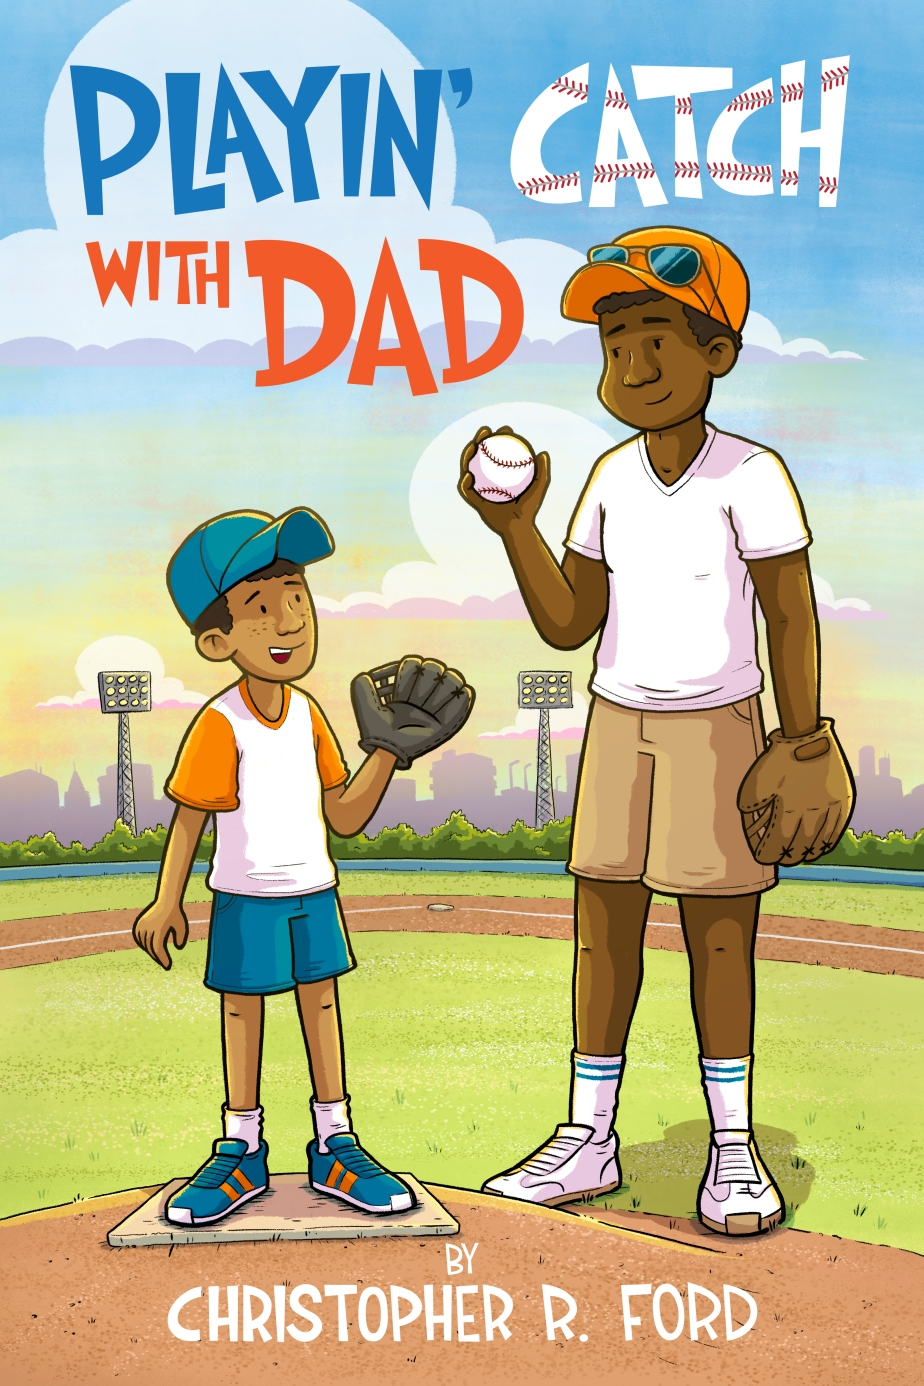 Playin' Catch With Dad Book